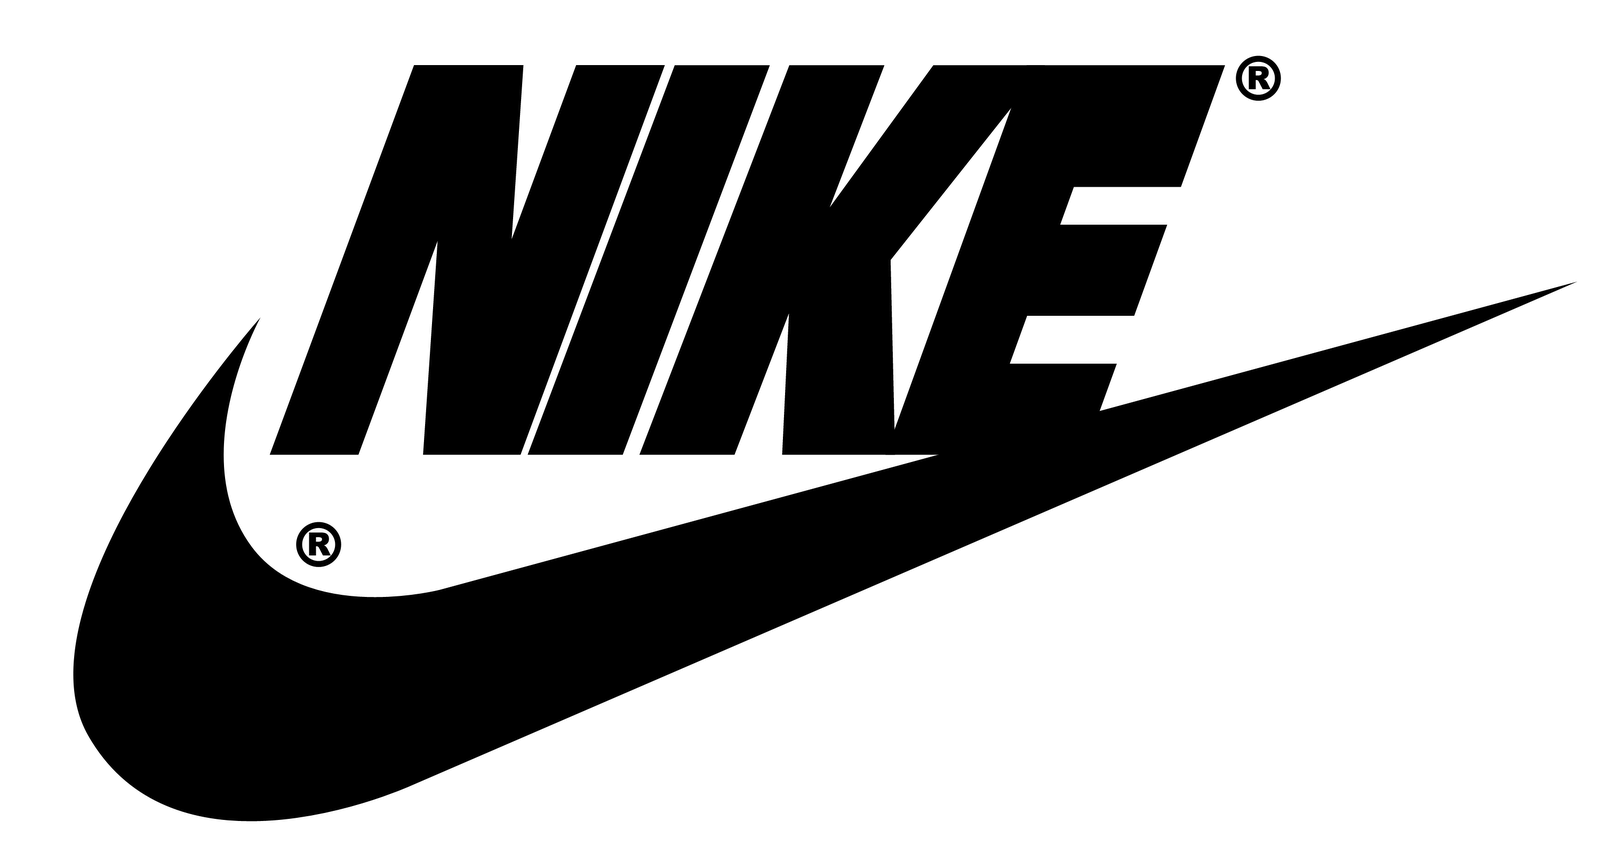 nike-swoosh-logo-png-the-top-10-most-popular-shoe-brands-everyone-is-wearing-top-10-rate-pict